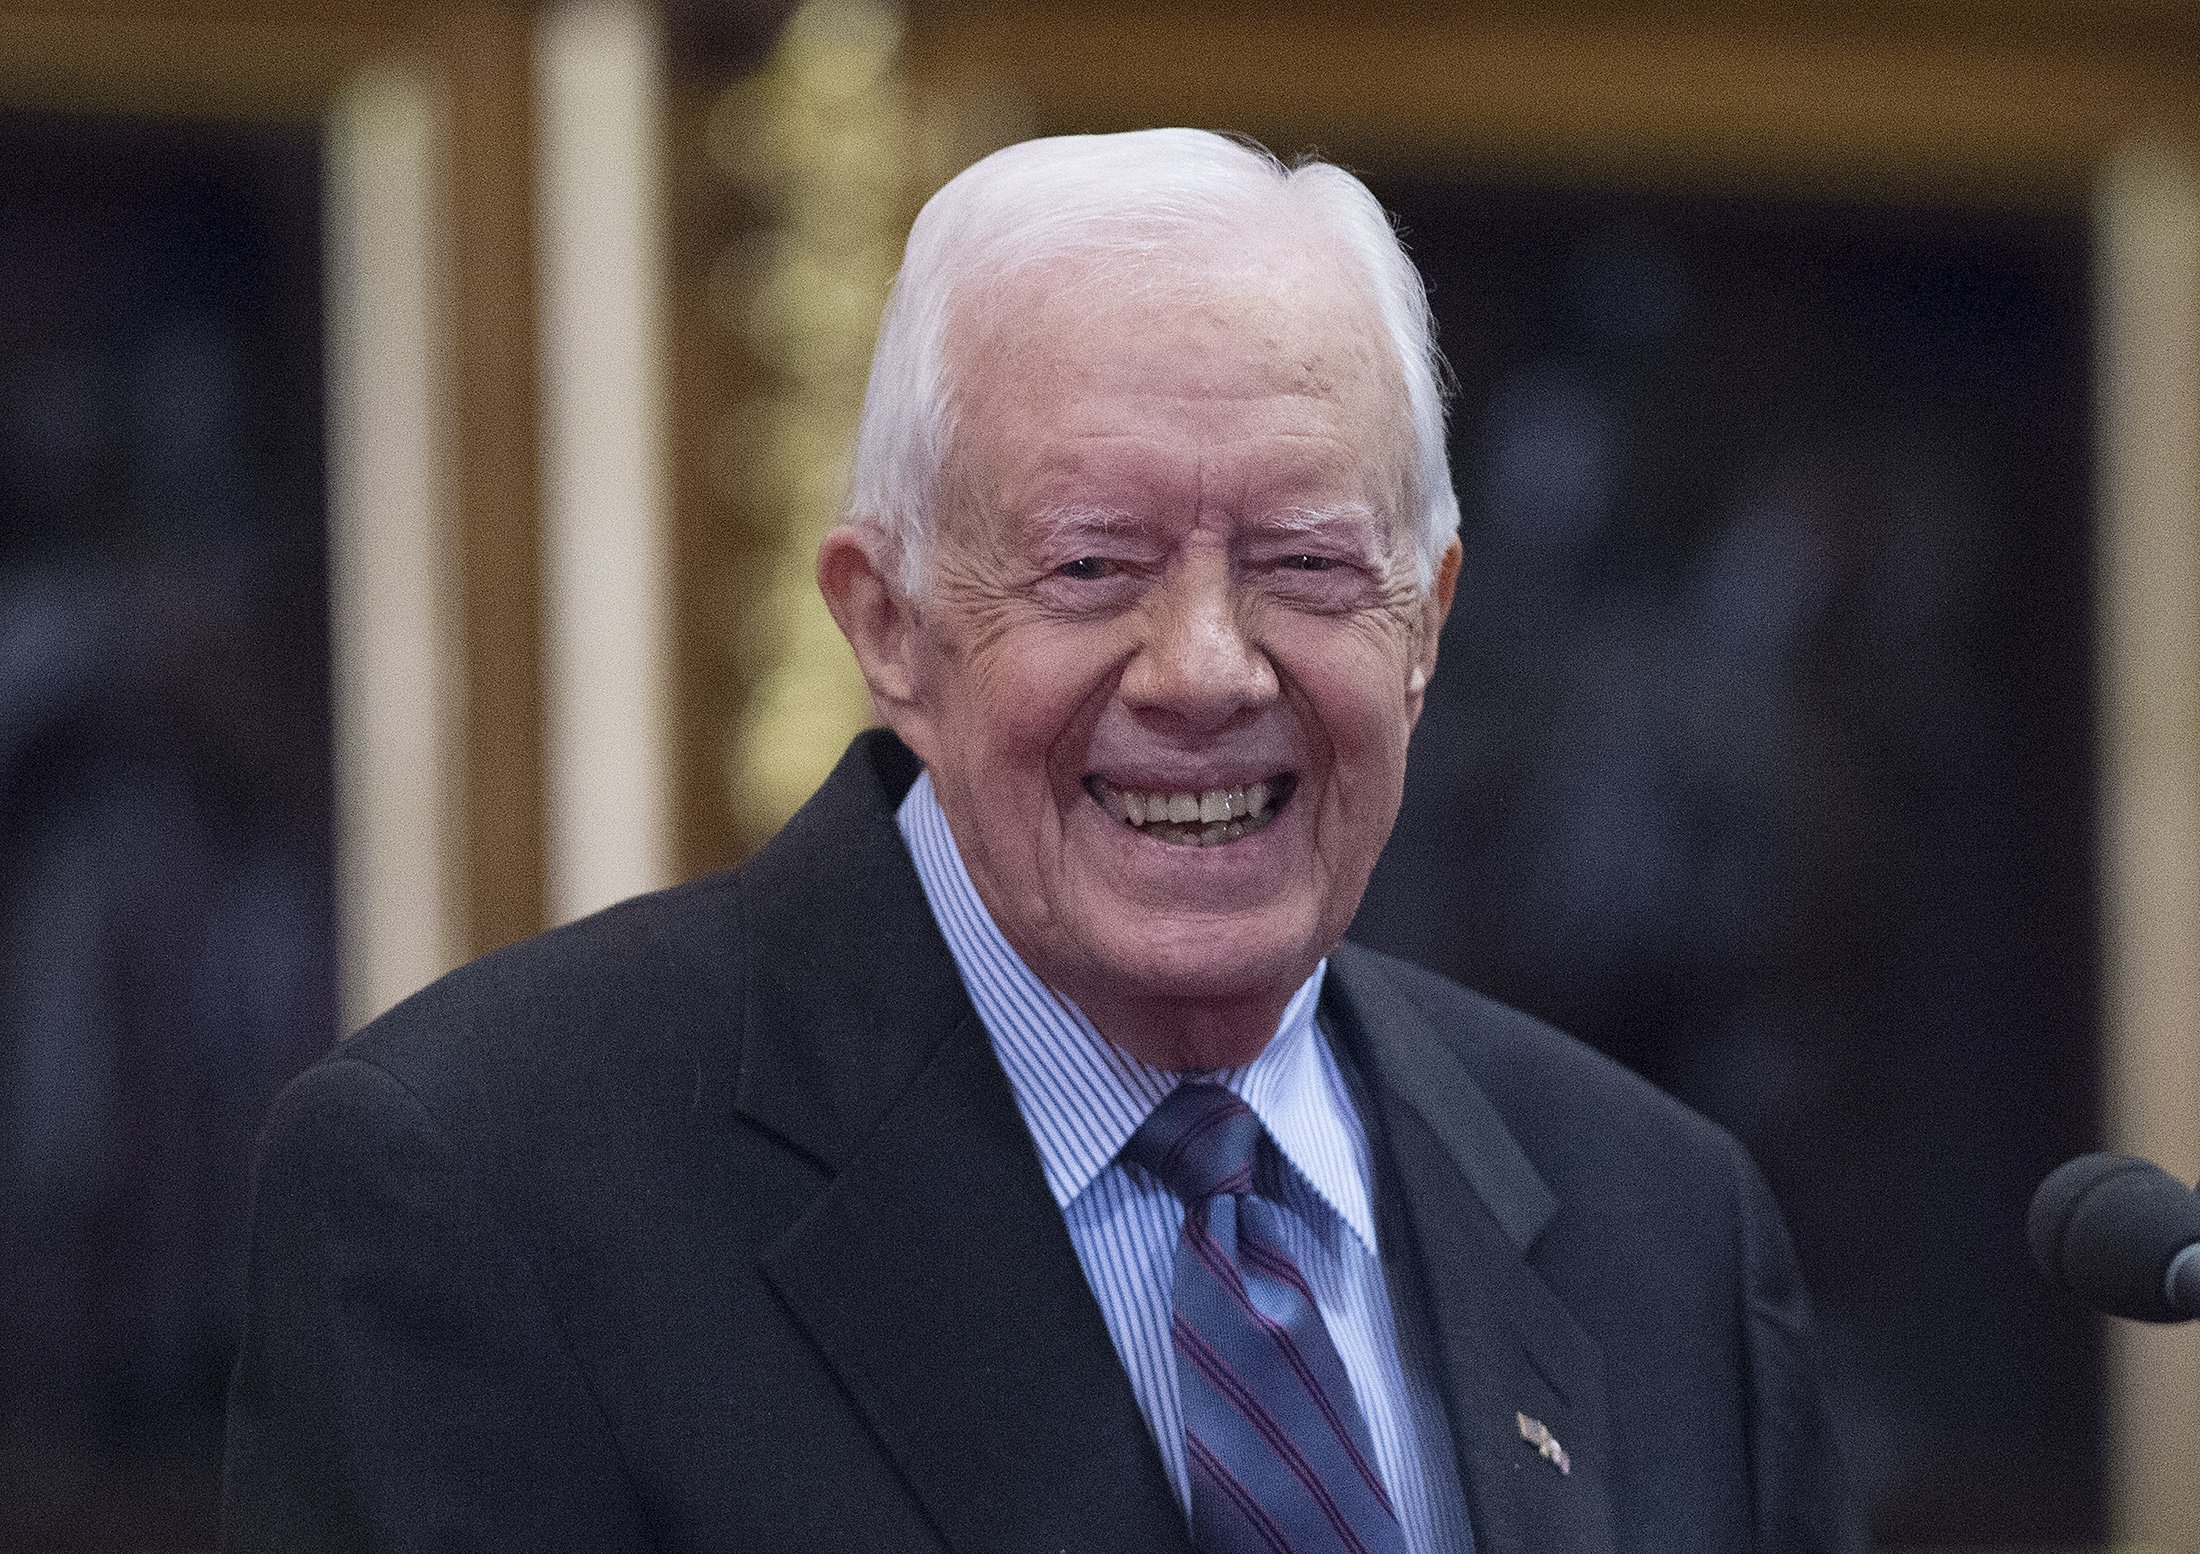 Former US President Jimmy Carter delivers a lecture on the eradication of the Guinea worm, at the House of Lords on February 3, 2016 in London | Photo: Getty Images